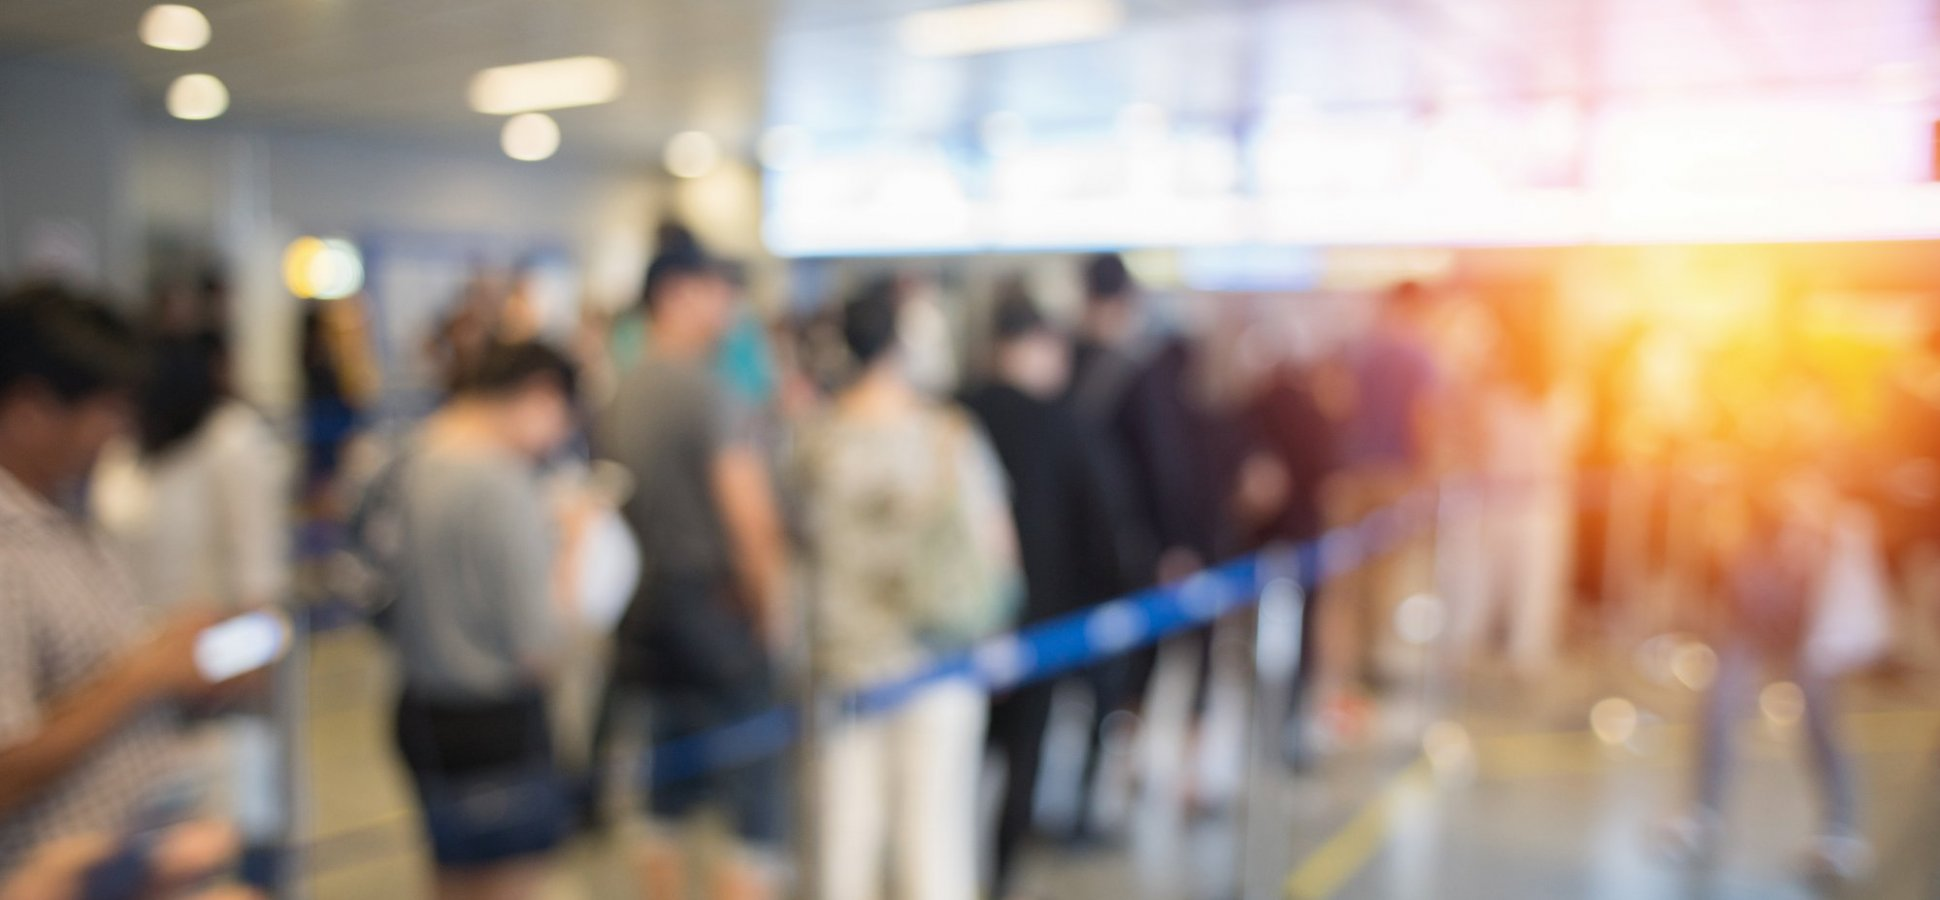 REAL ID: Why Millions of Americans Will Need a New ID at the Airport Next Year